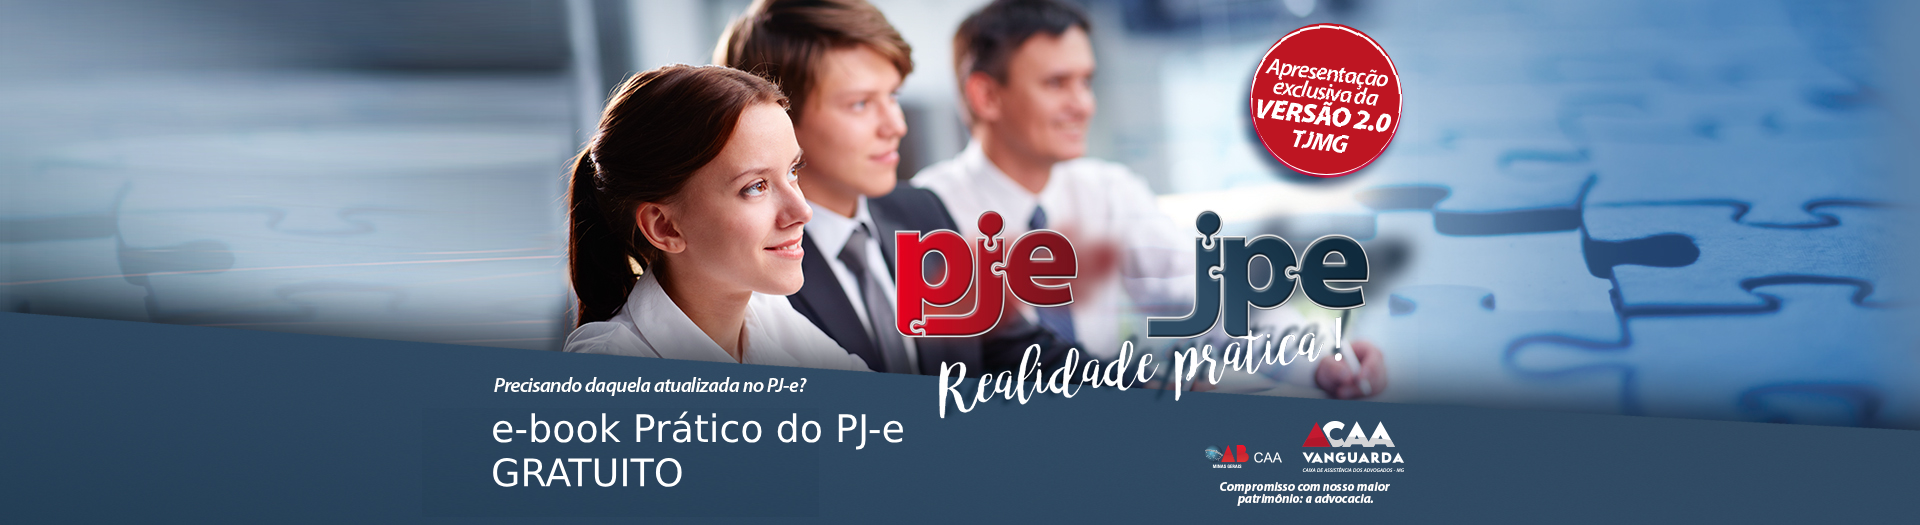 E-book prático do Pj-e gratuito